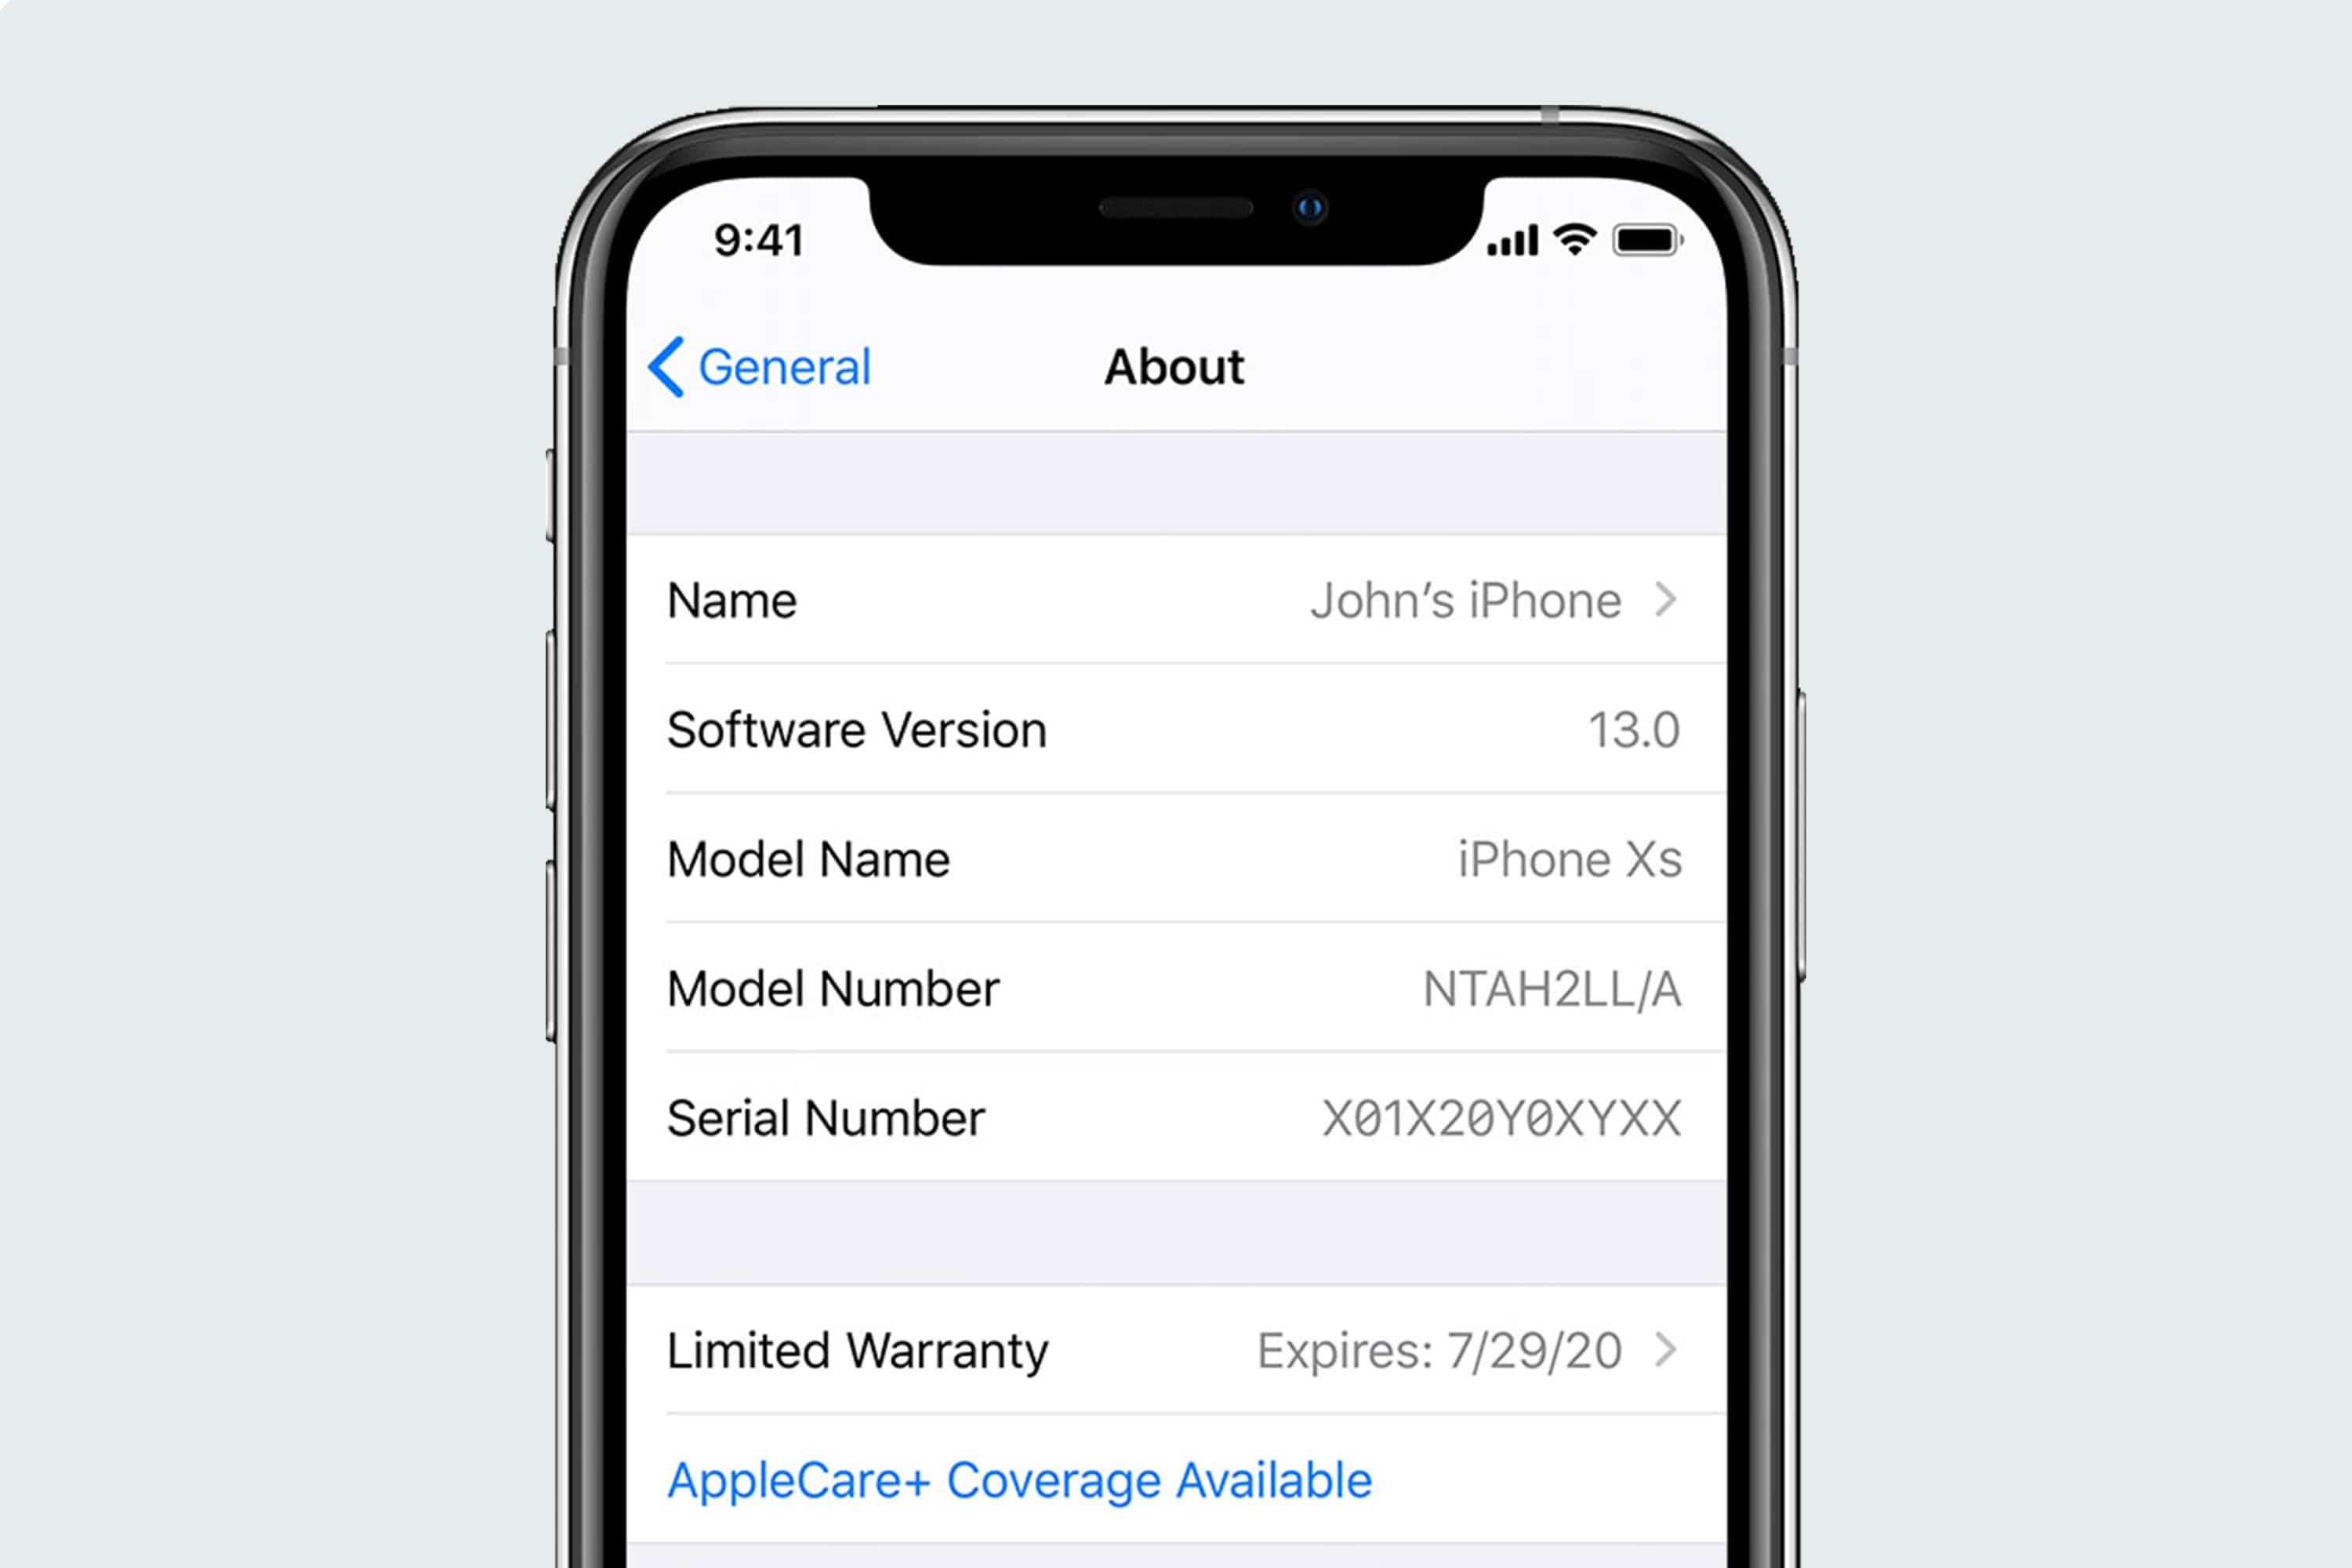 applecare-memo-reveals-possible-new-products-december-8-20201203-1